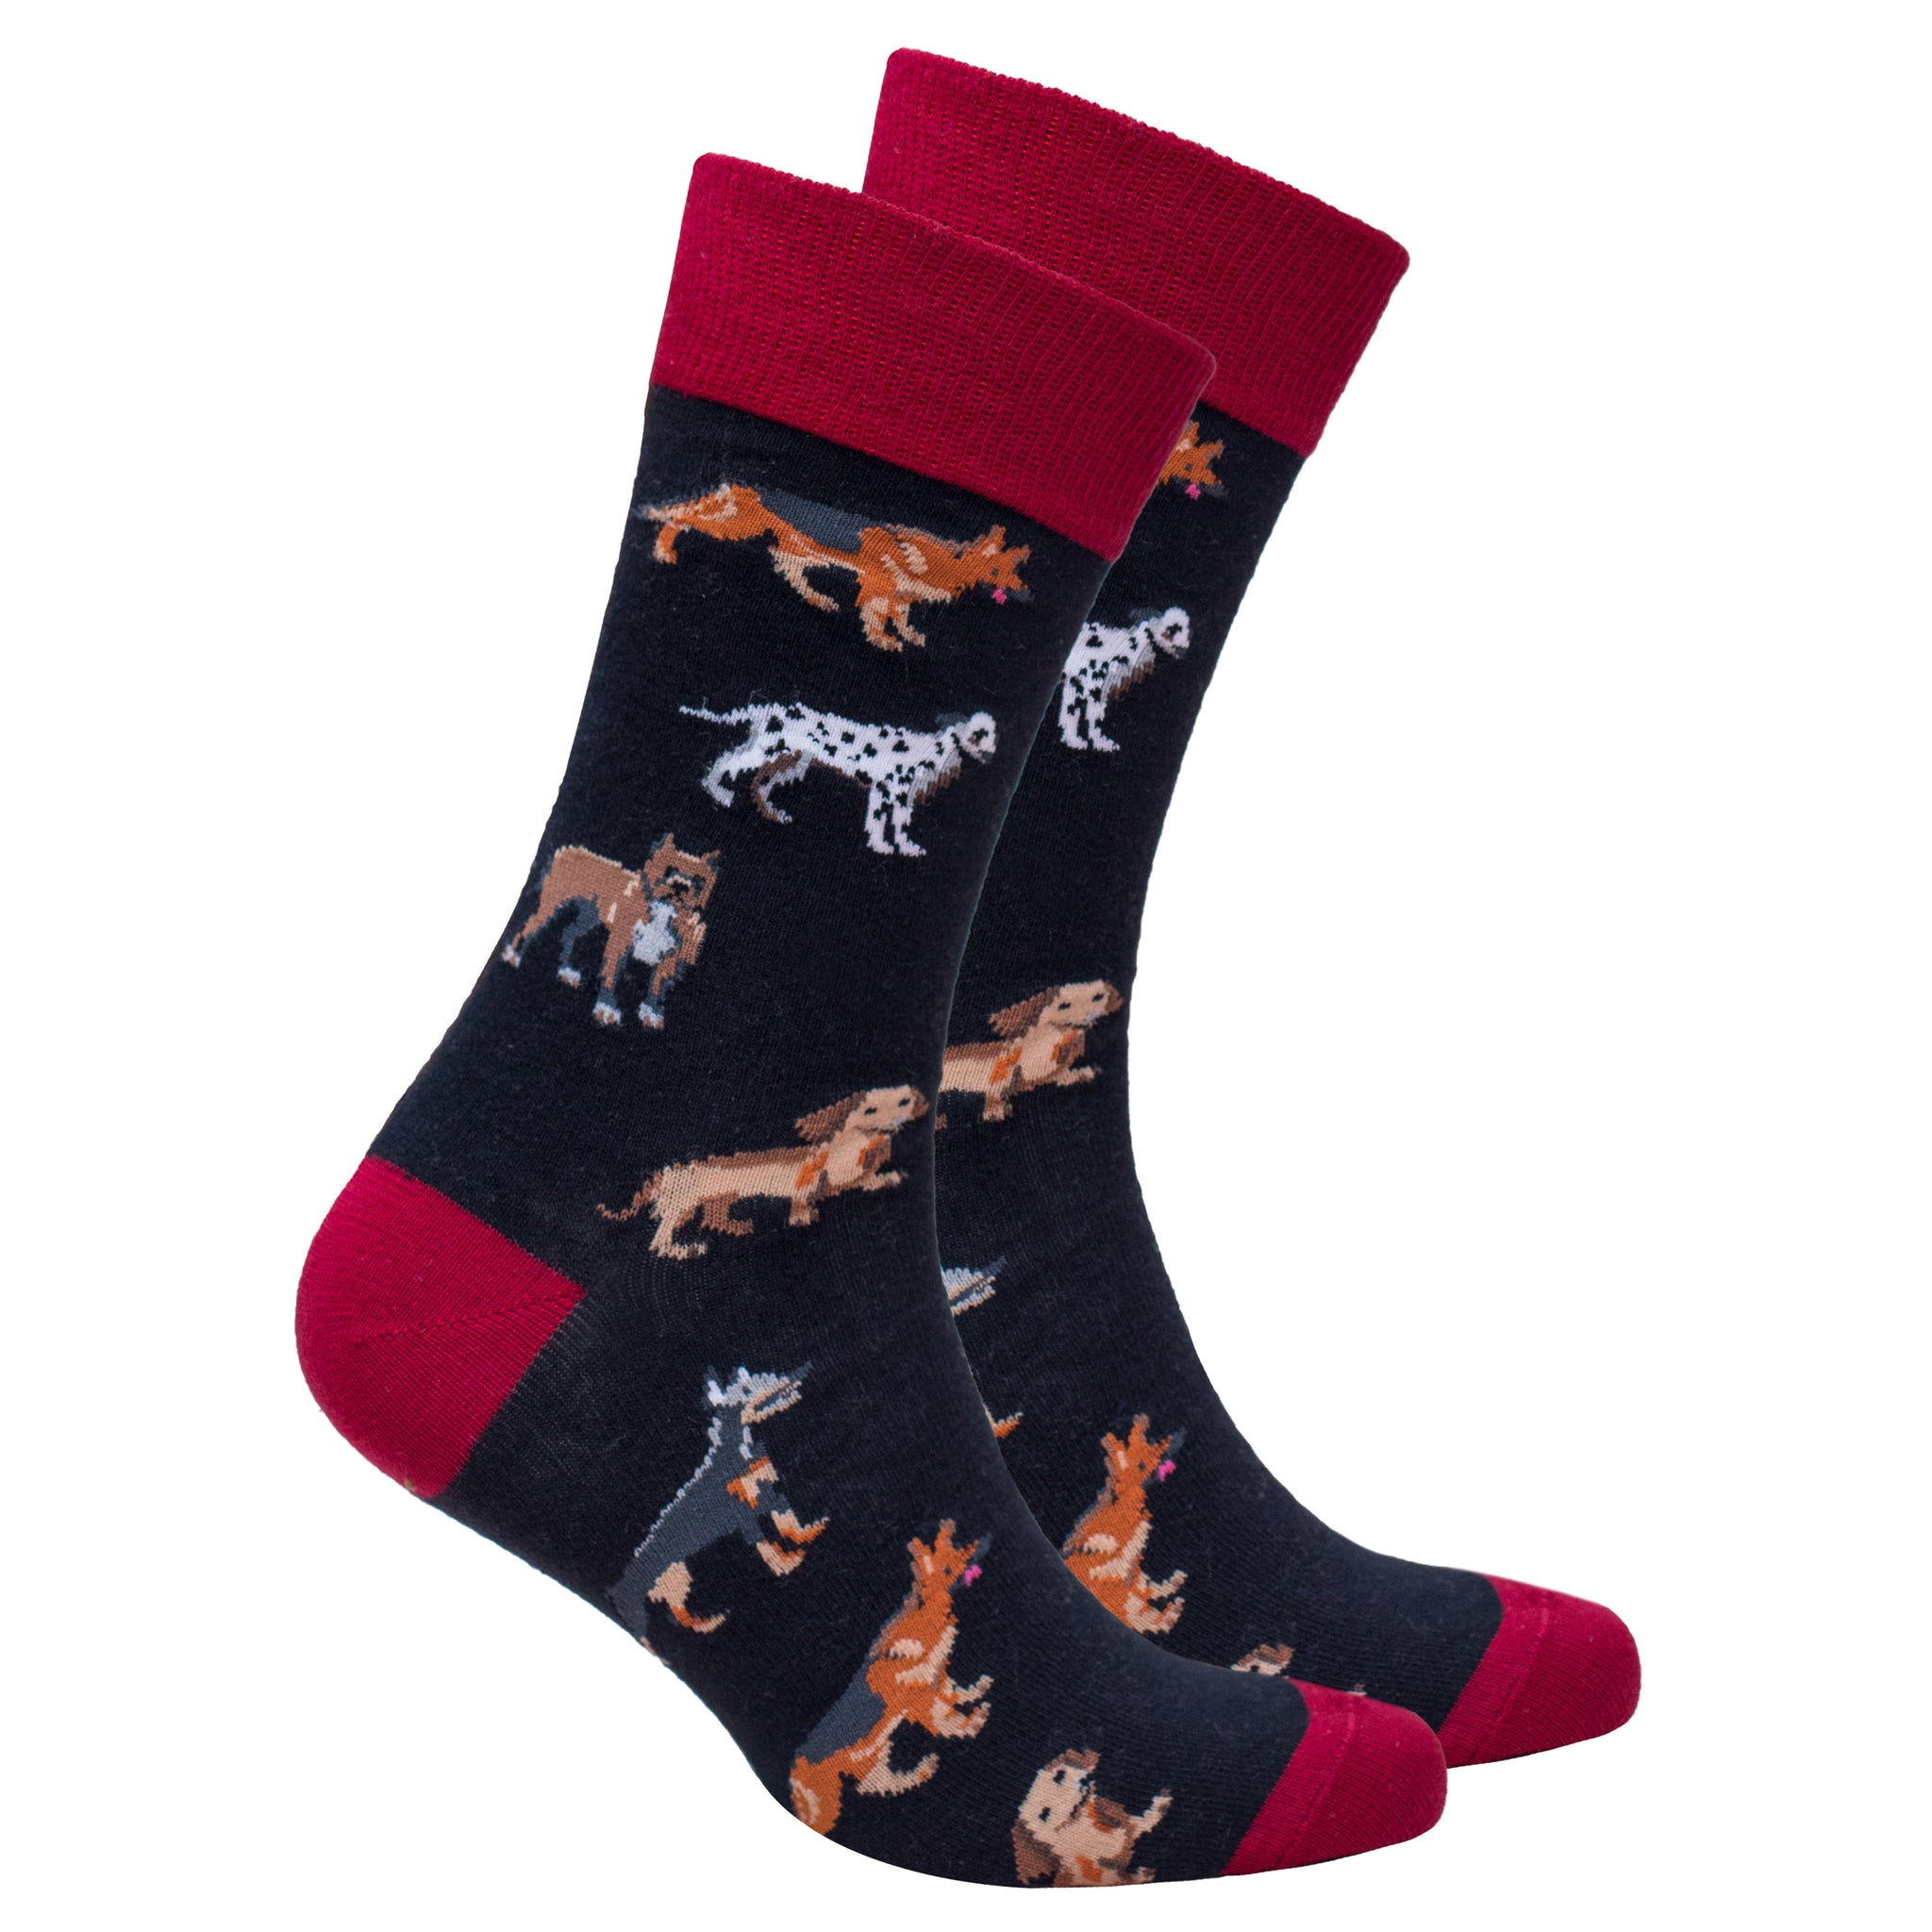 Men's Multi Dogs Socks